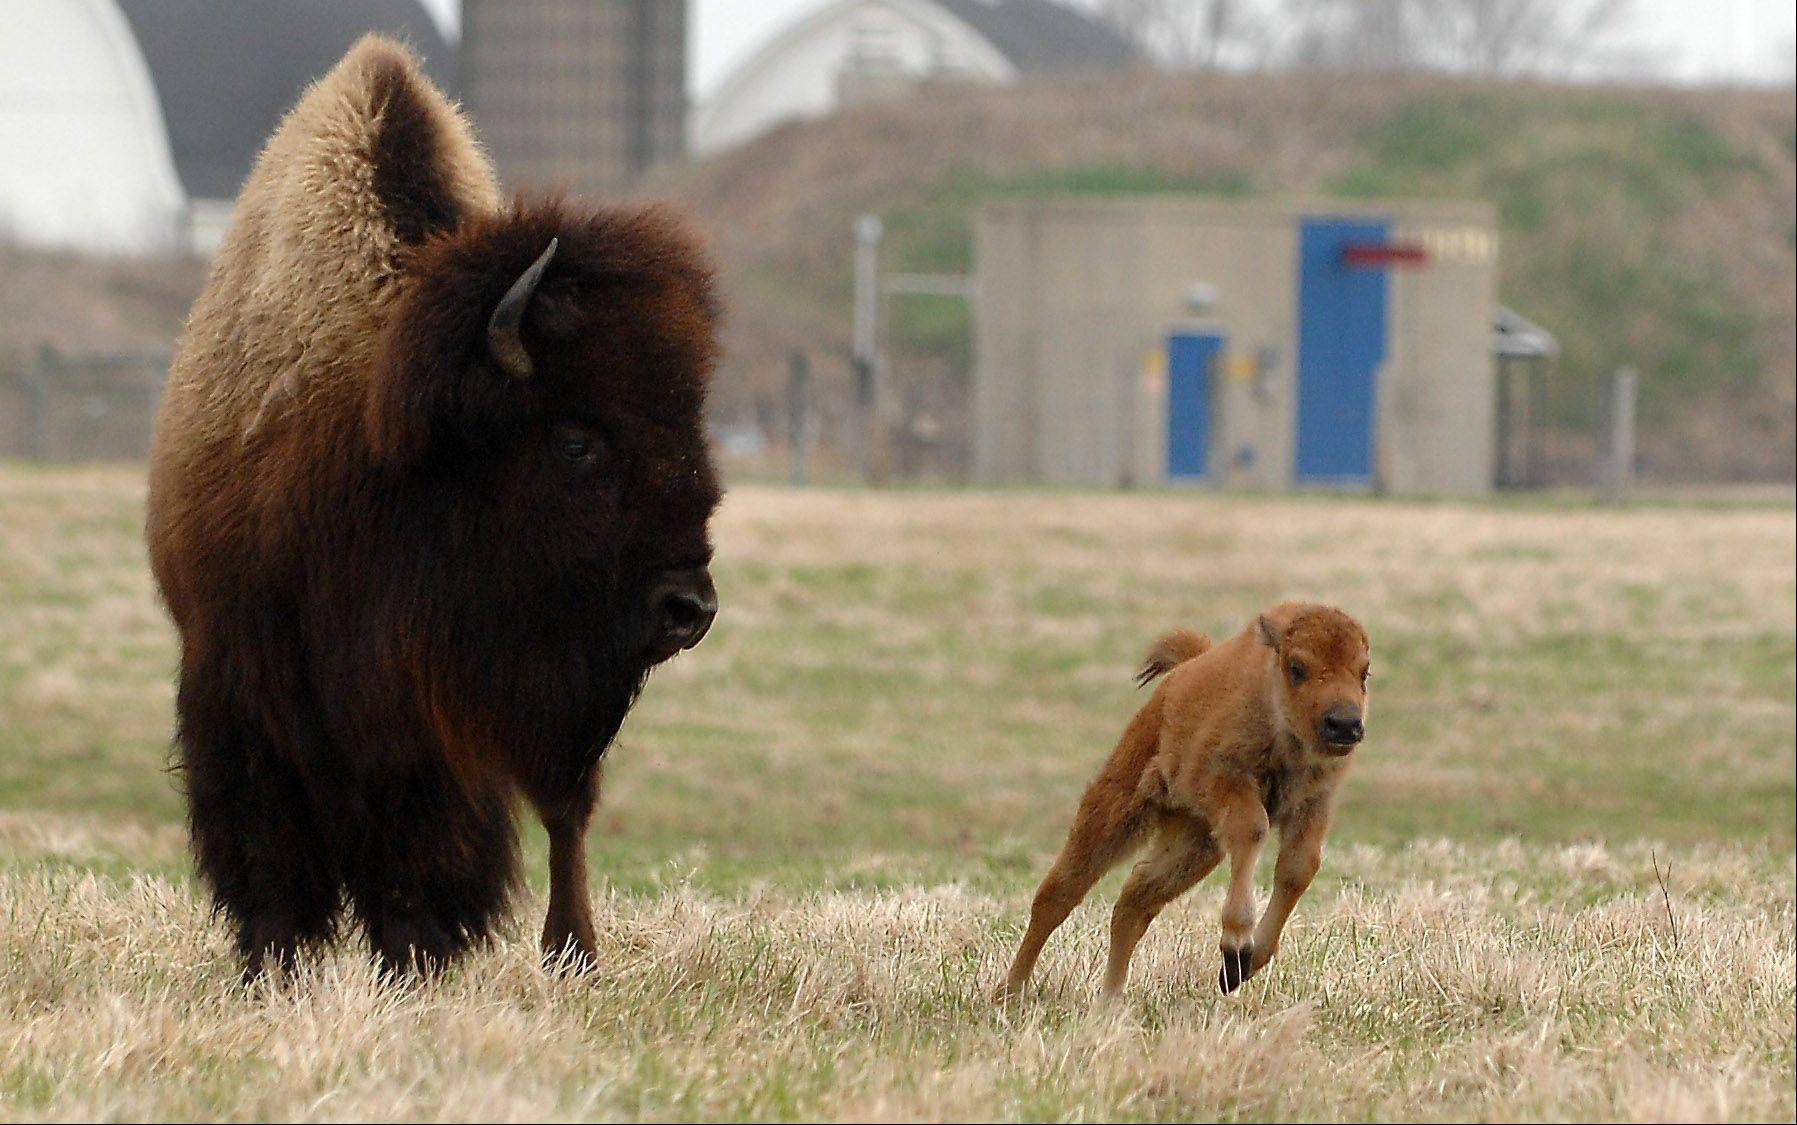 A two-day-old bison calf goes for a run under the watchful eye of its mother at Fermilab in Batavia.